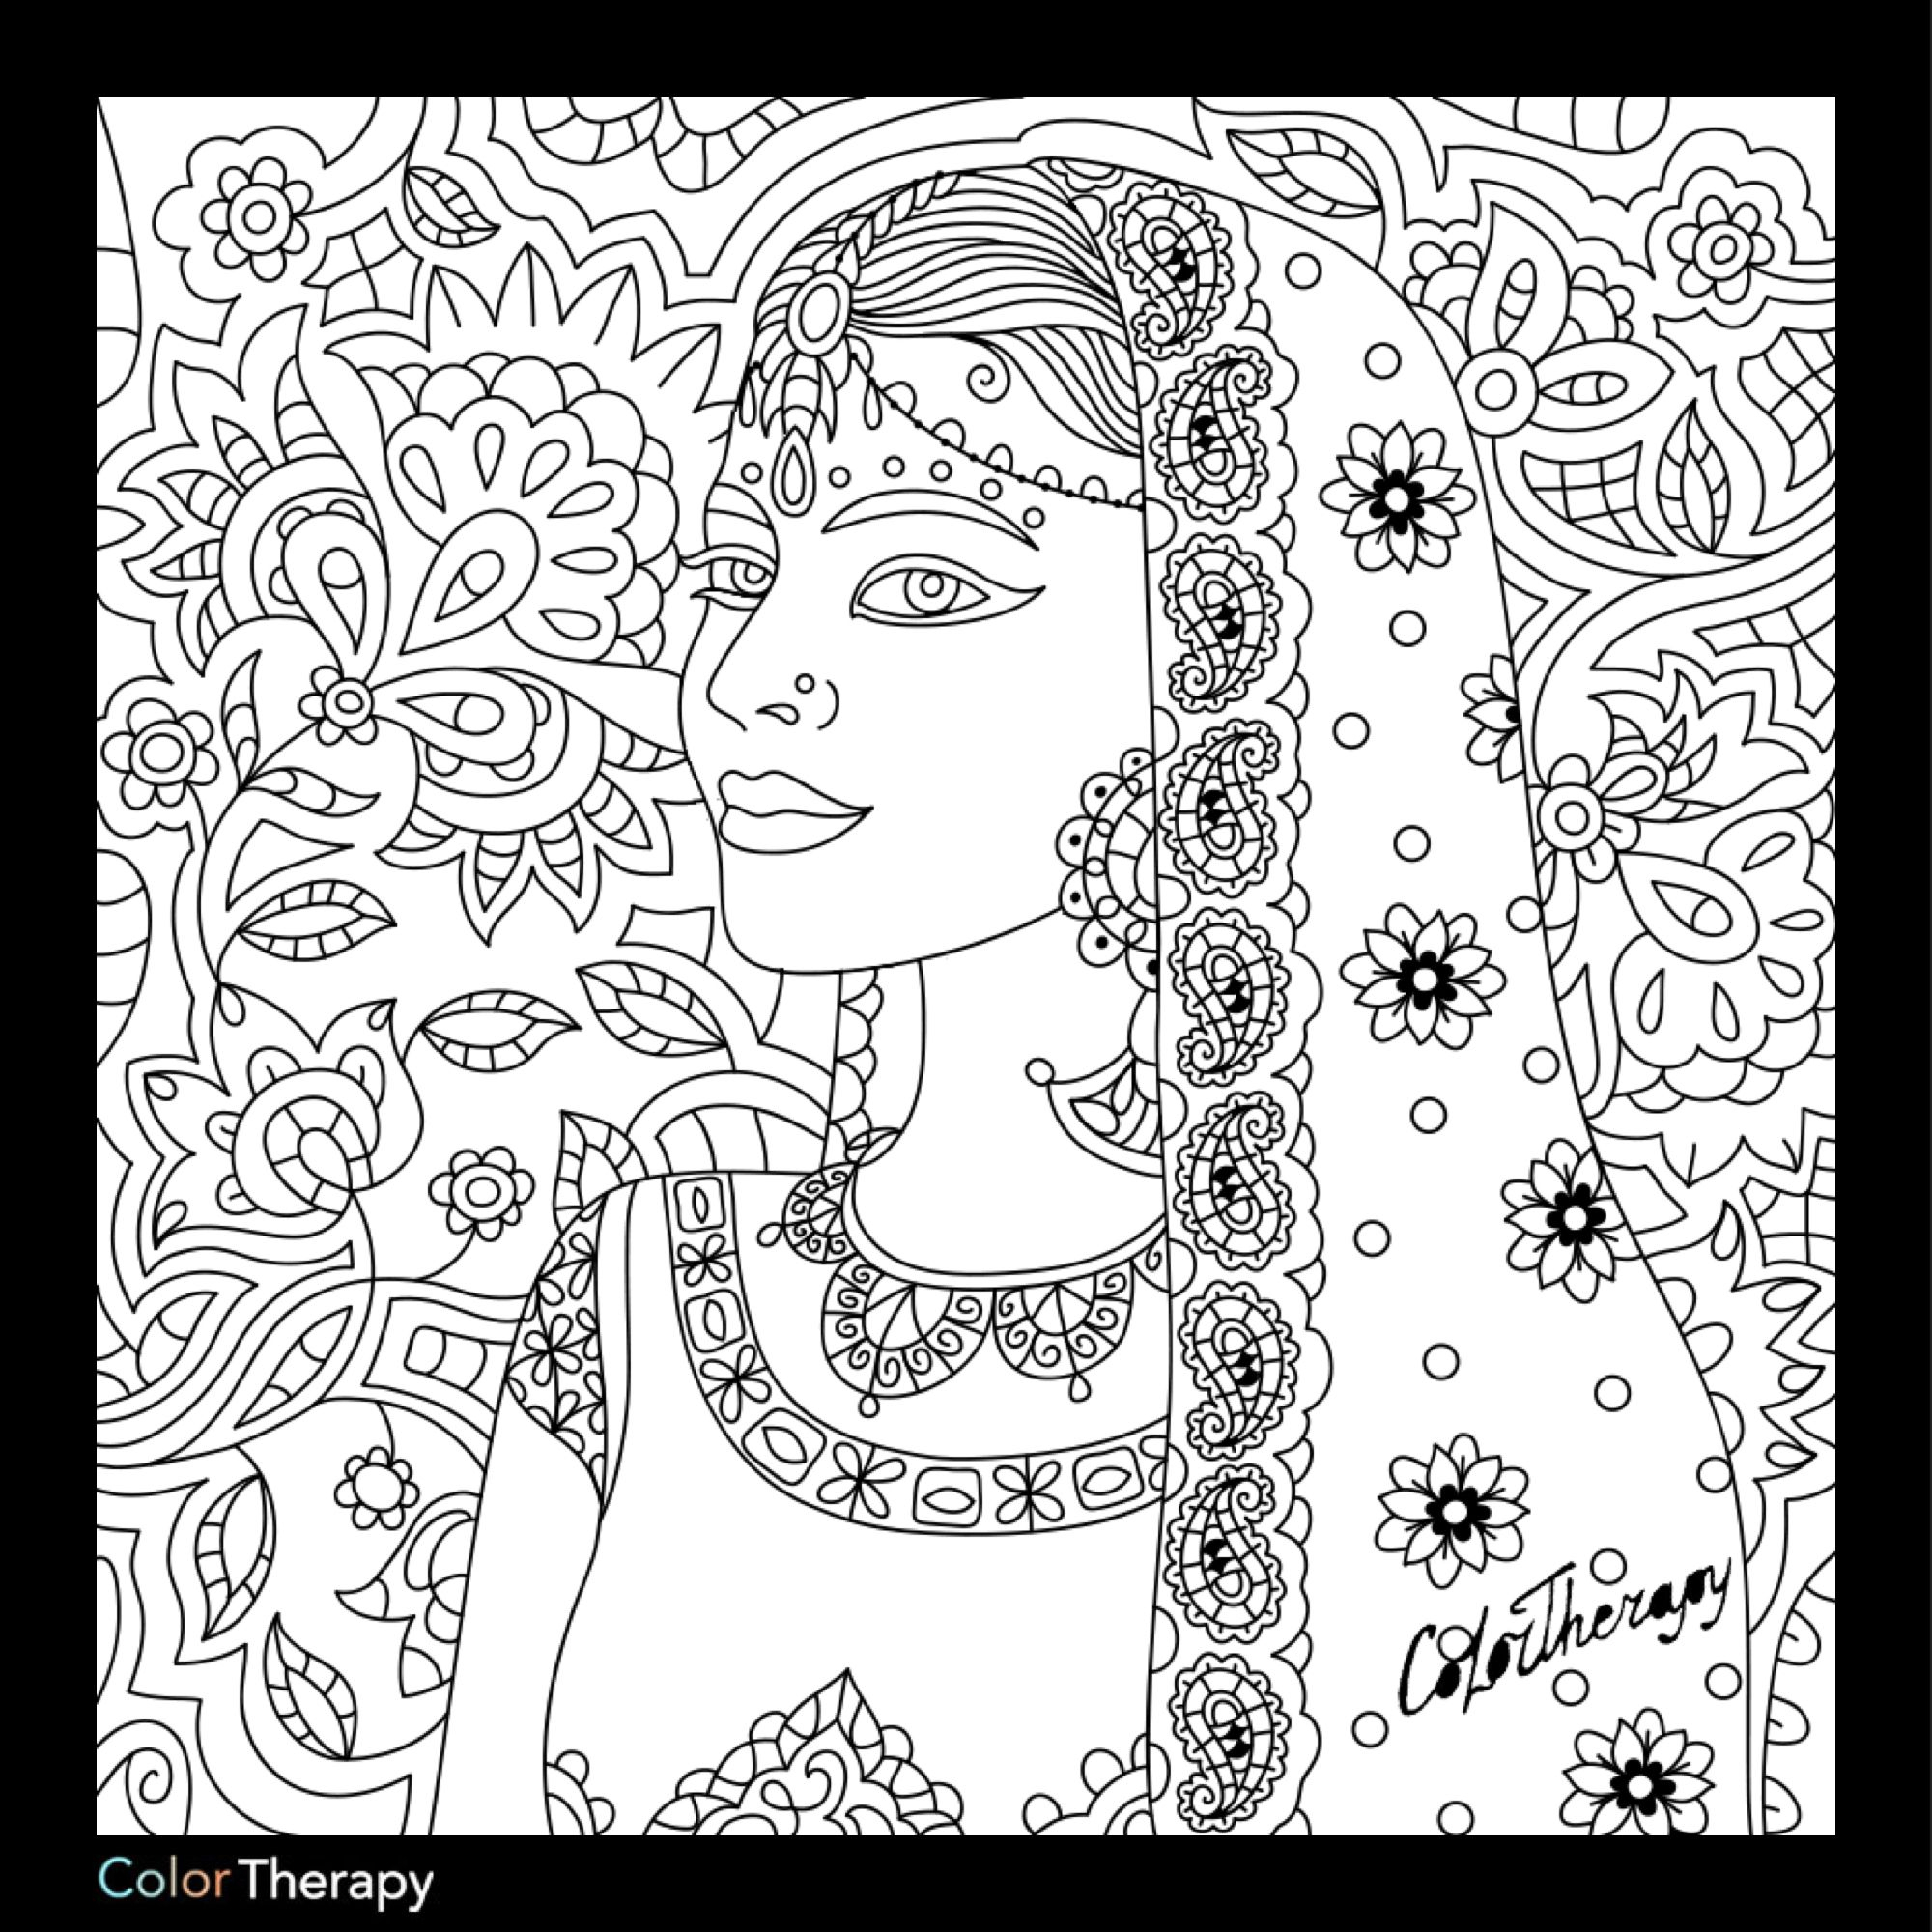 Épinglé Sur Color Therapy Coloring Number Elodie encequiconcerne Coloriage Application Gratuite